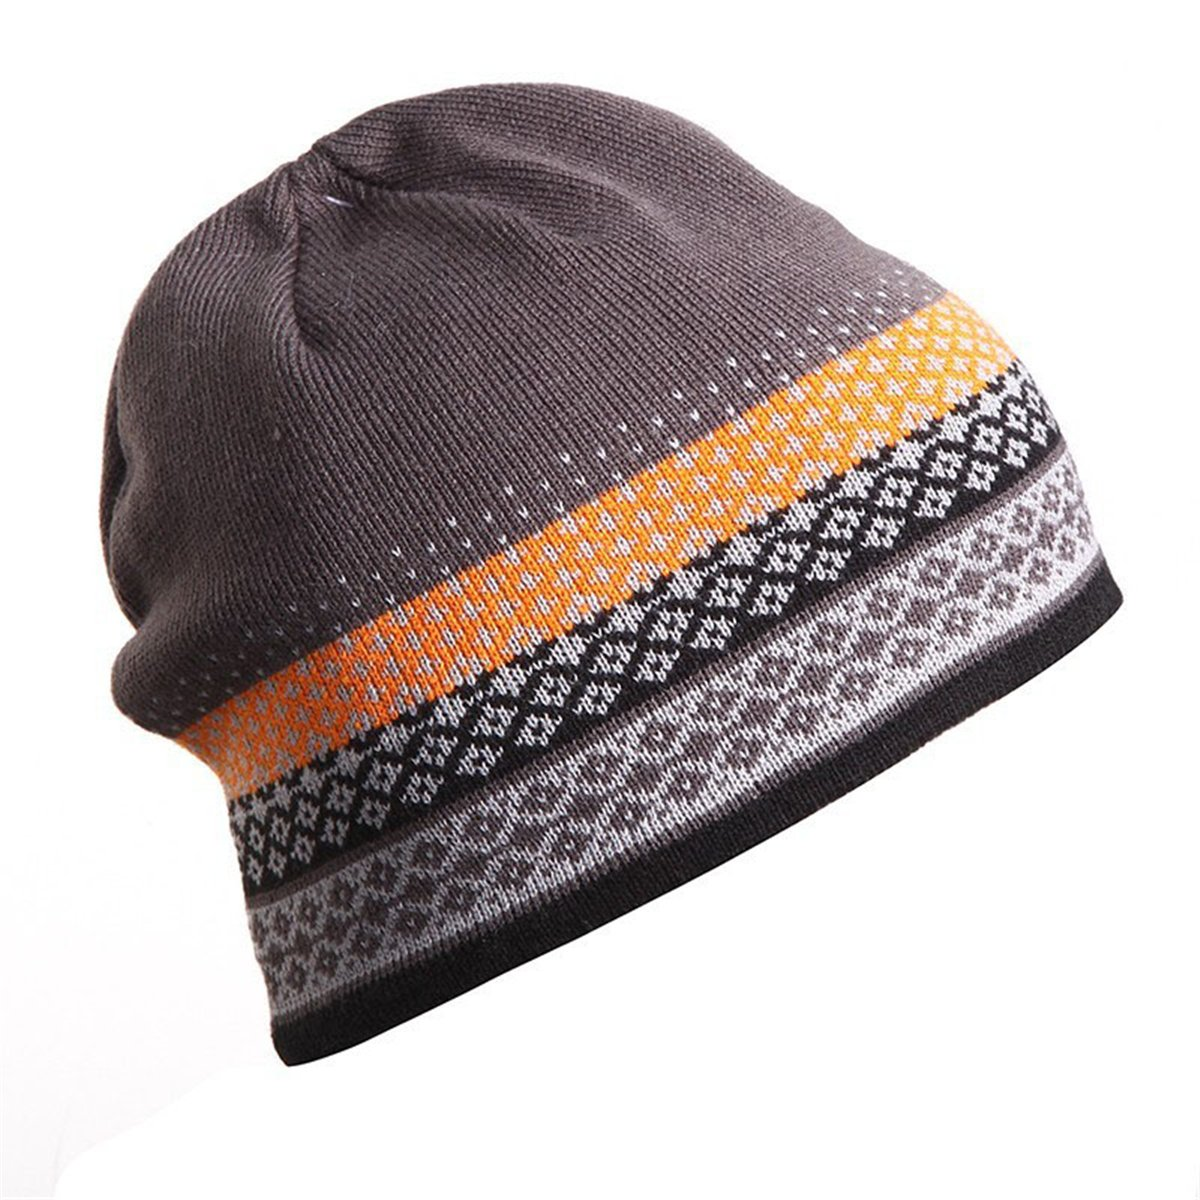 Apparelsales Mens Winter Skiing Snow Stretch Knitting Hat Cap Hearwear Lindaeshop